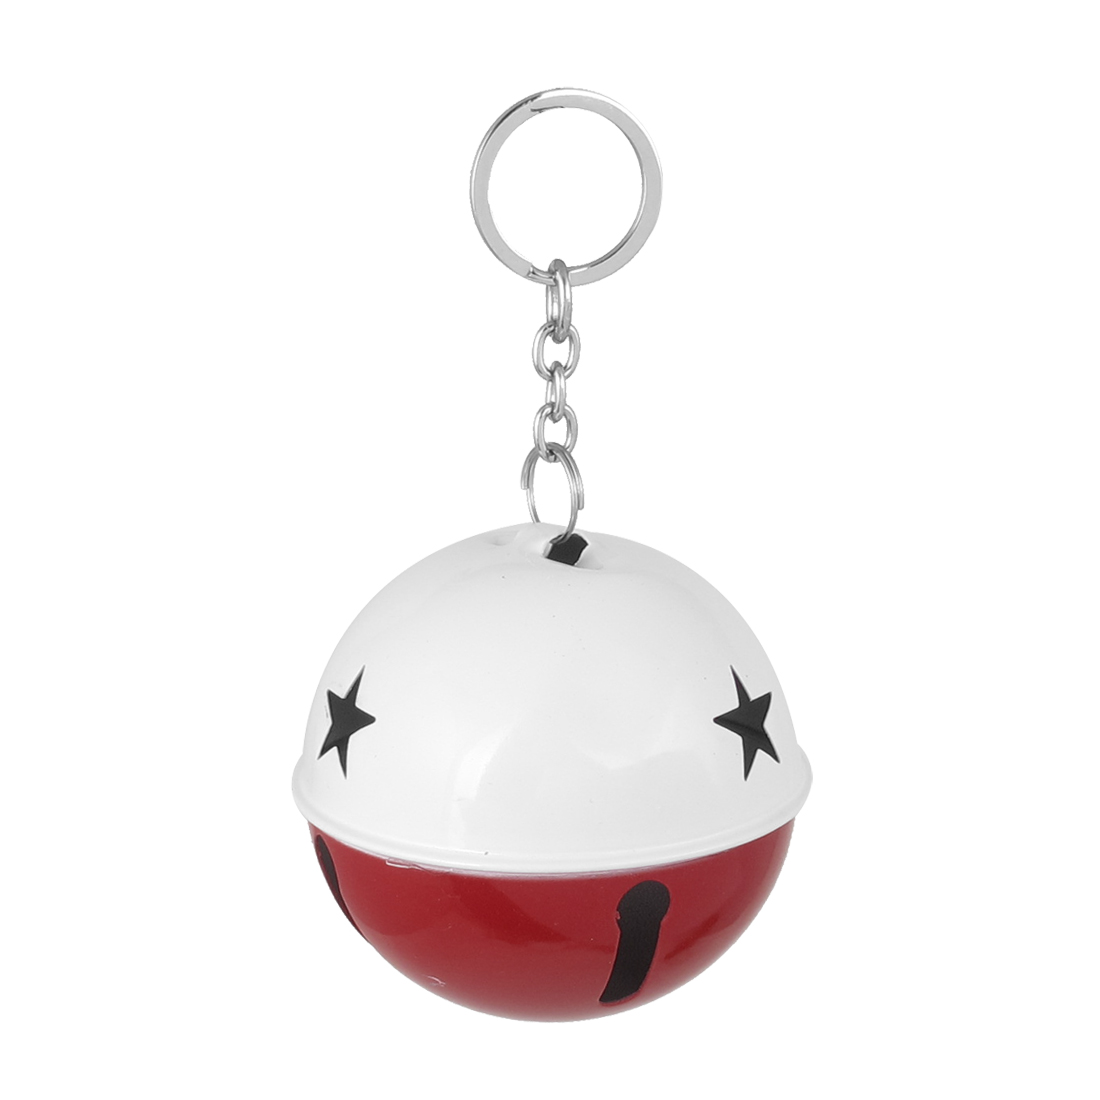 80mm Diameter White Red Metal Keychain Split Hollow Out Design Ring Bell Ornament for Xmas Celebration Case Backpack Purse